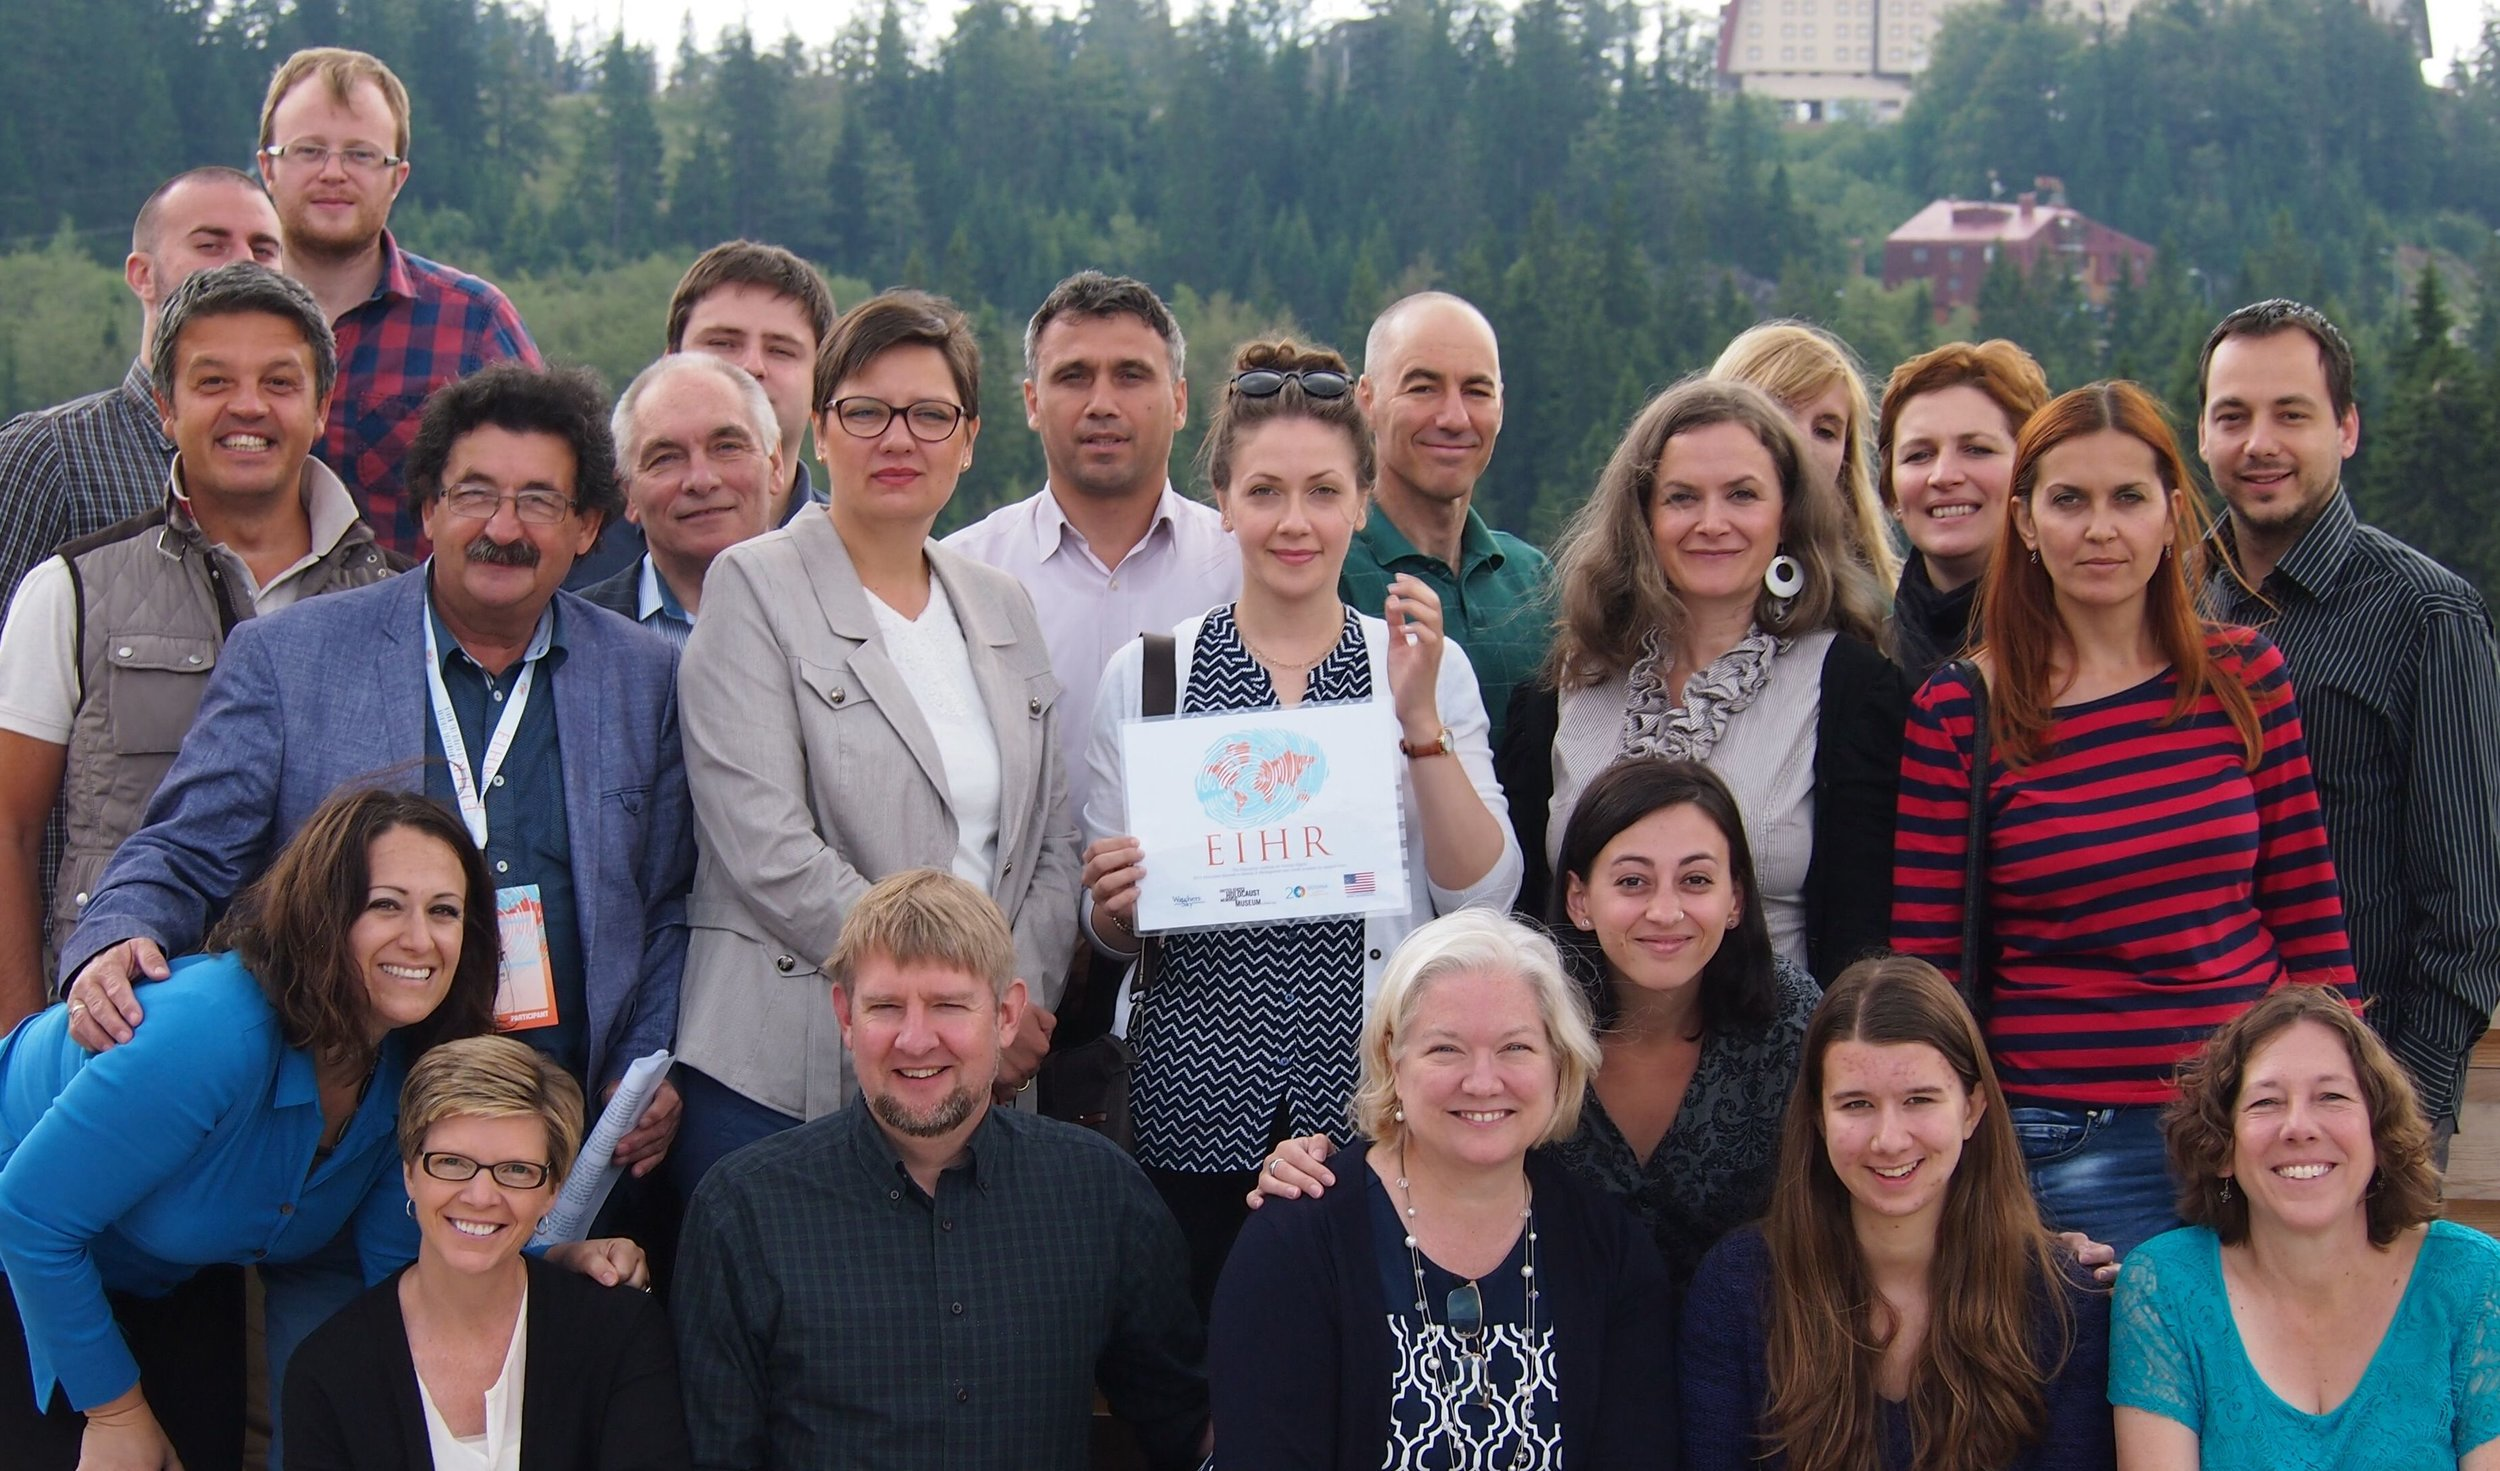 Alma, center with sign, at the EIHR Education Summit in Jahorina, 2015